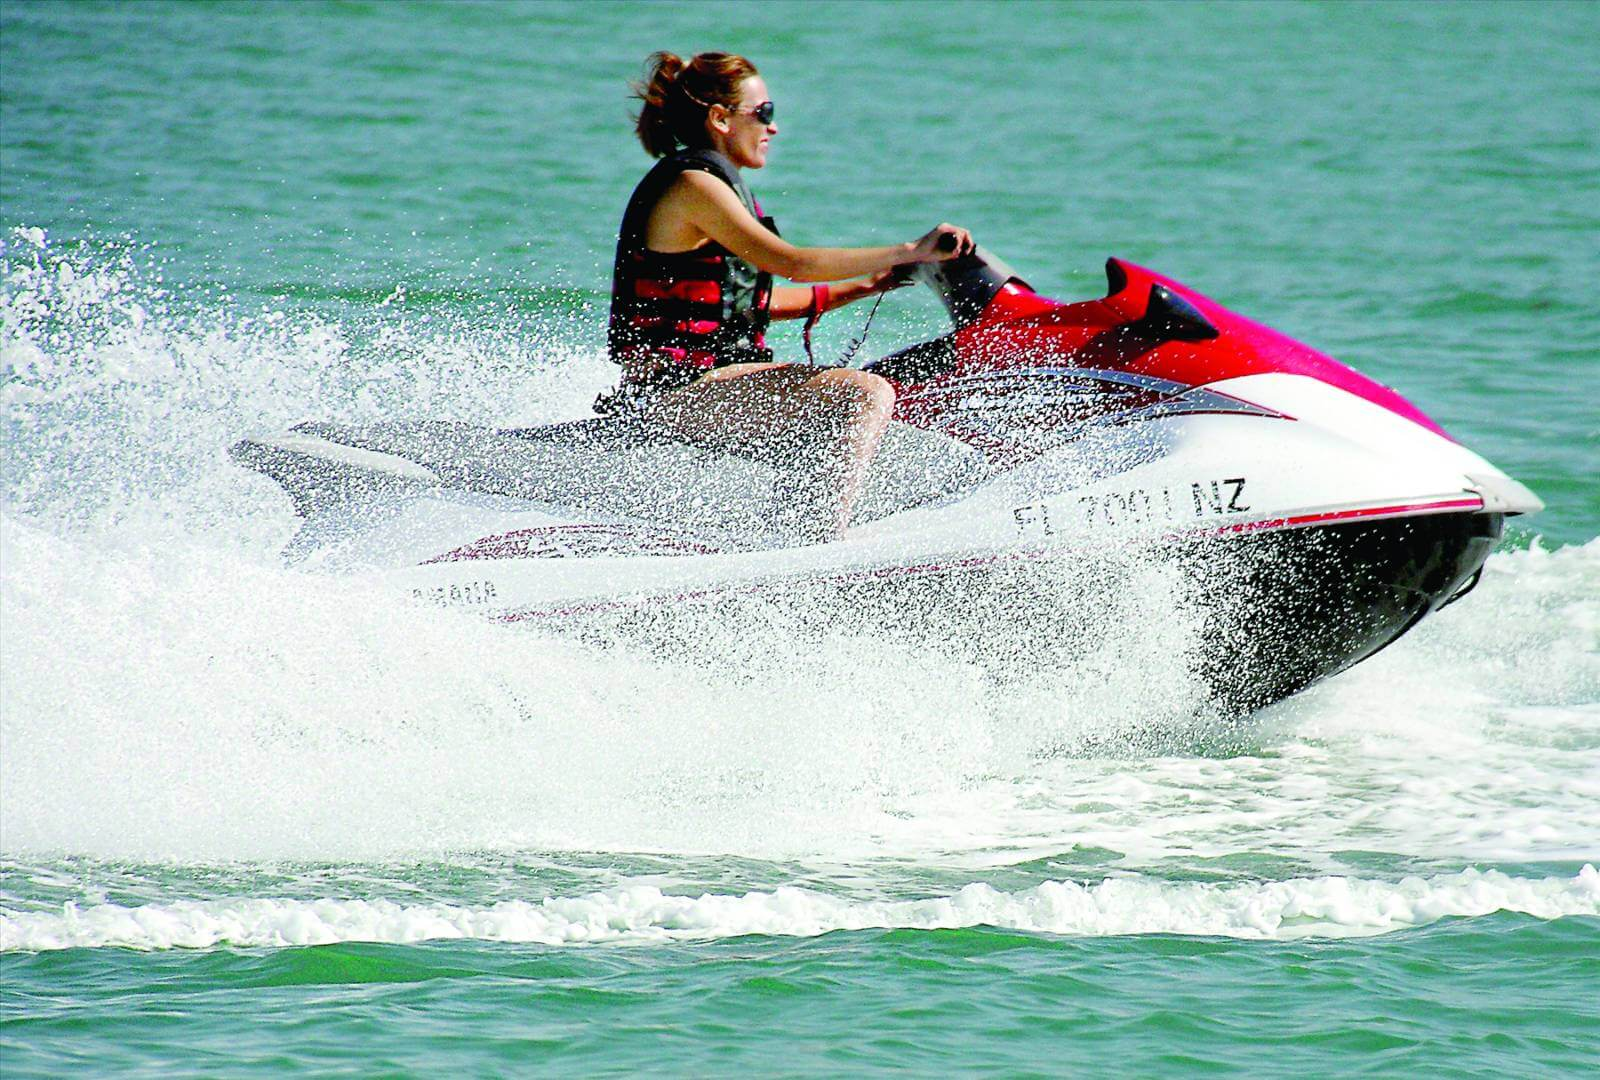 Marco Island Water Sports offers Jetski and WaveRunner tours and rentals in Marco Island, Florida.